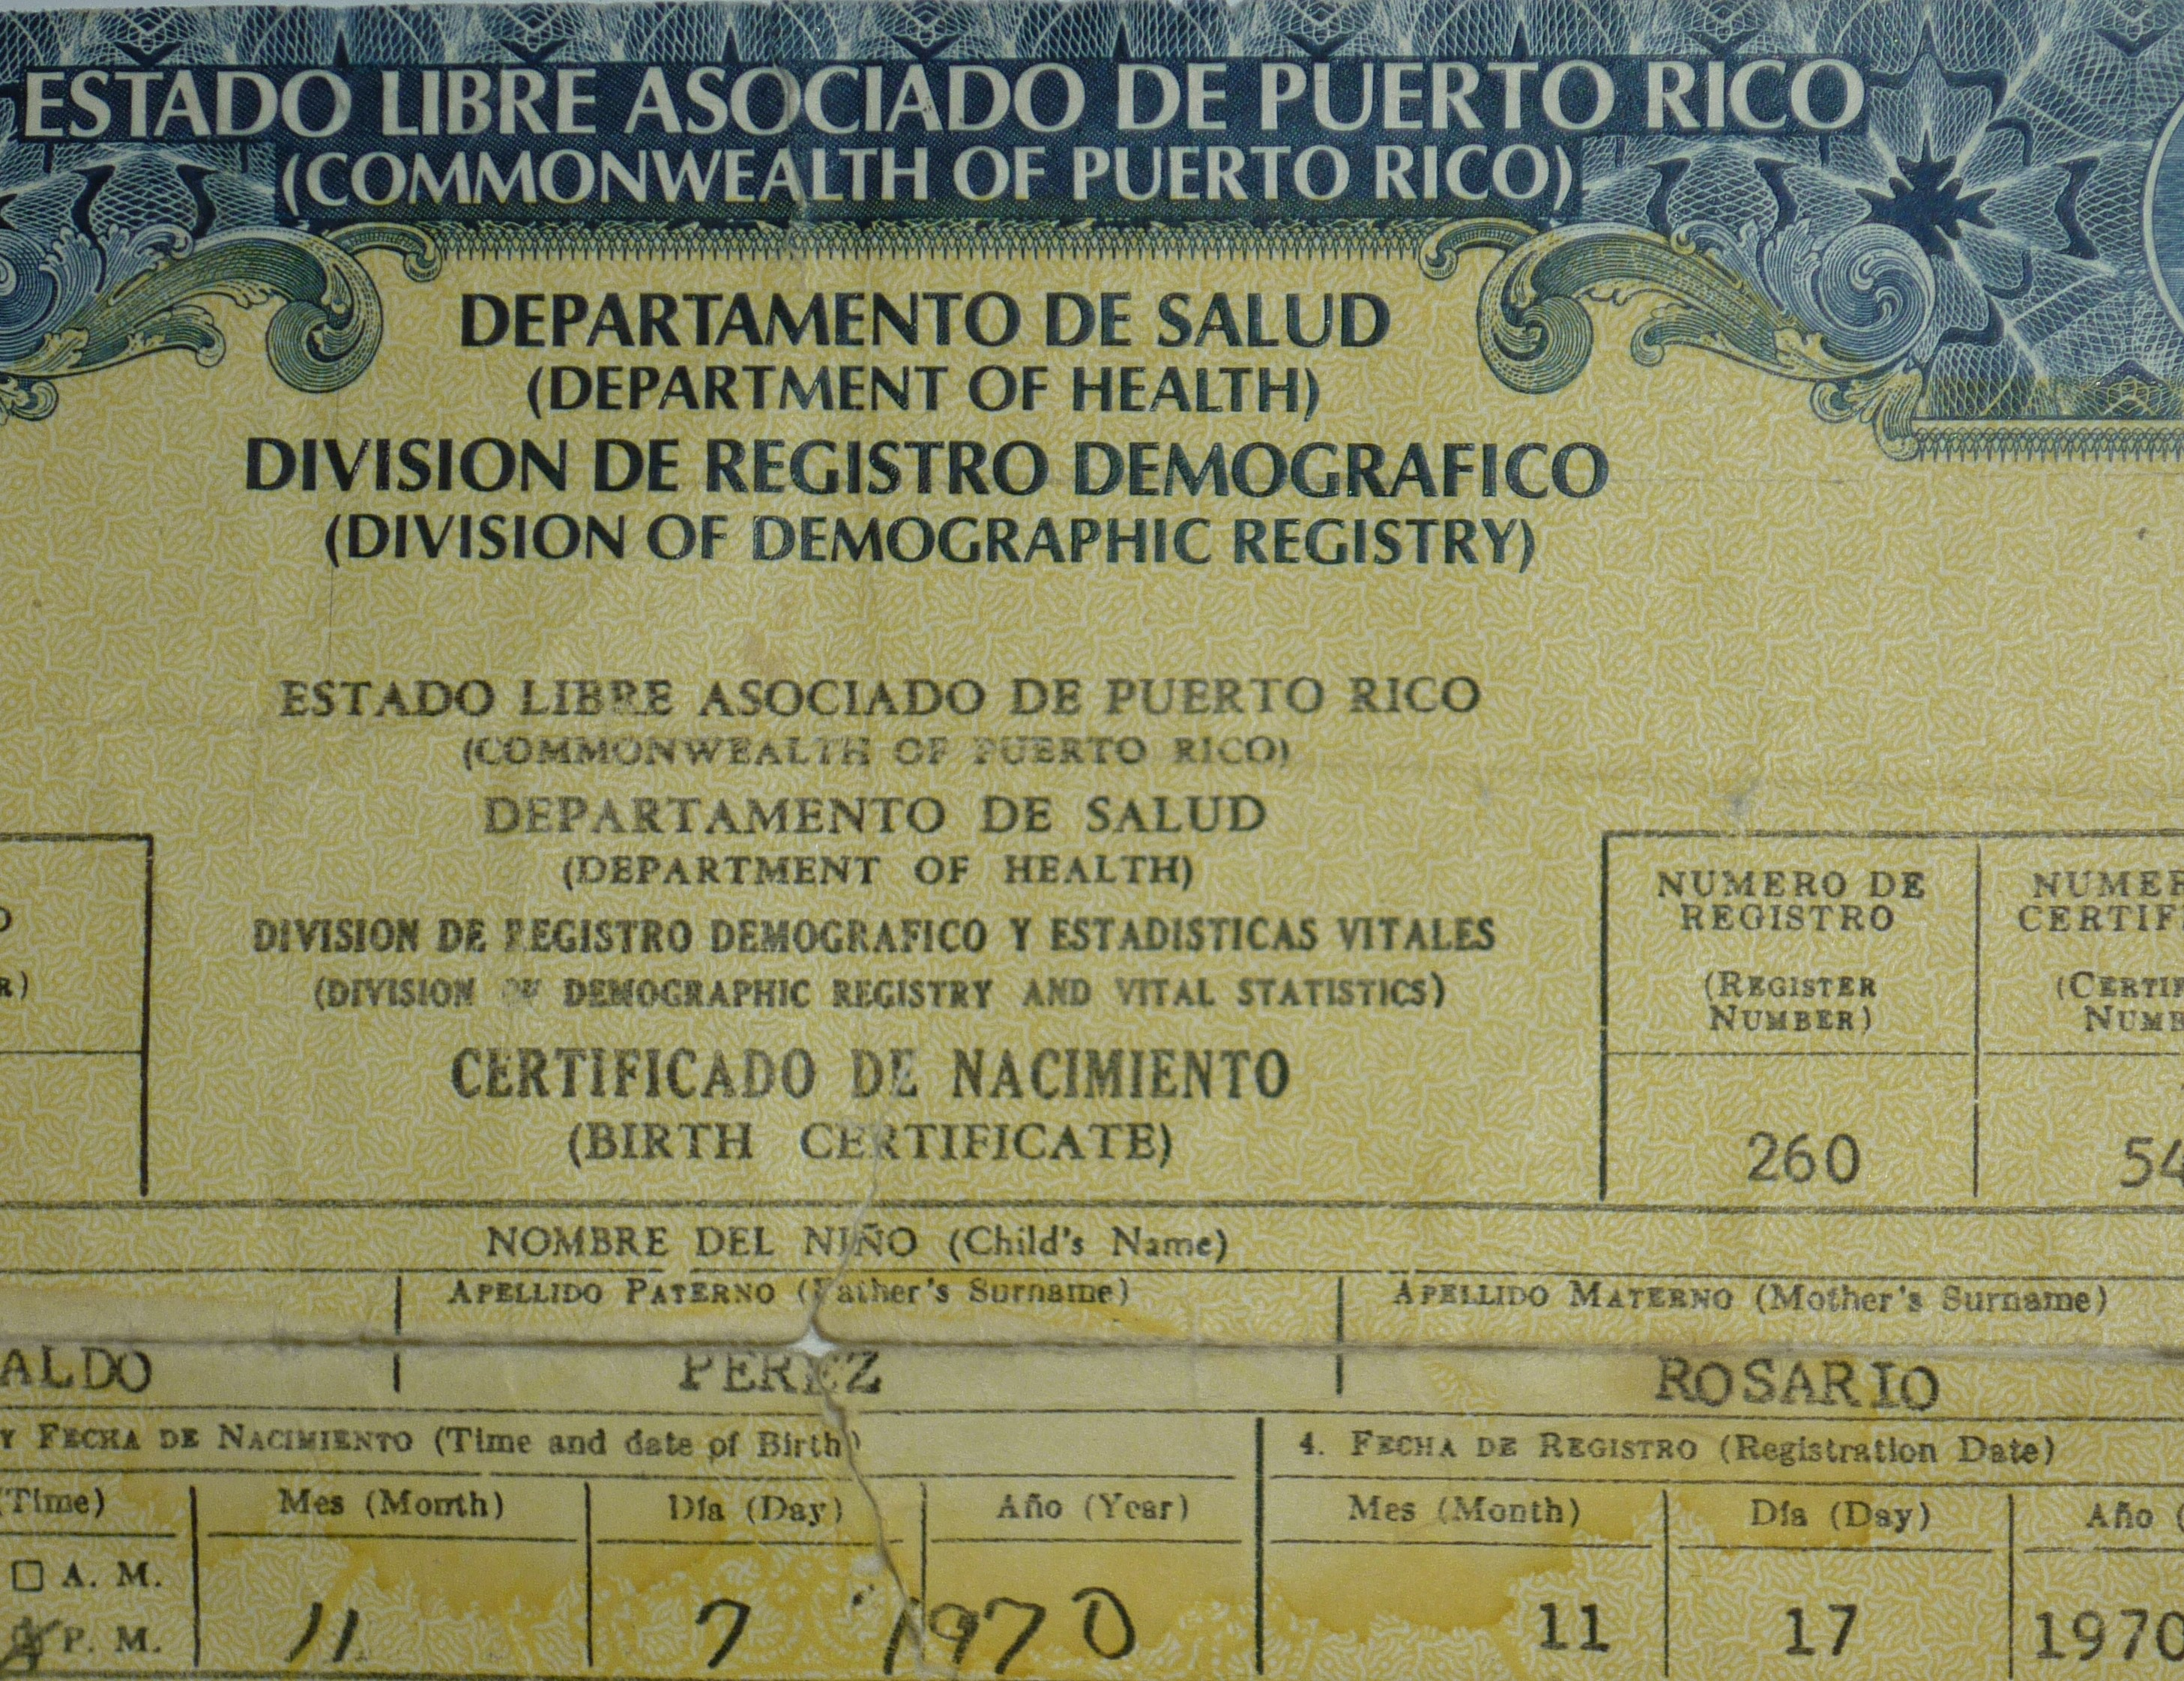 Puerto rico issuing new birth ids to avert fraud repeating islands xflitez Choice Image